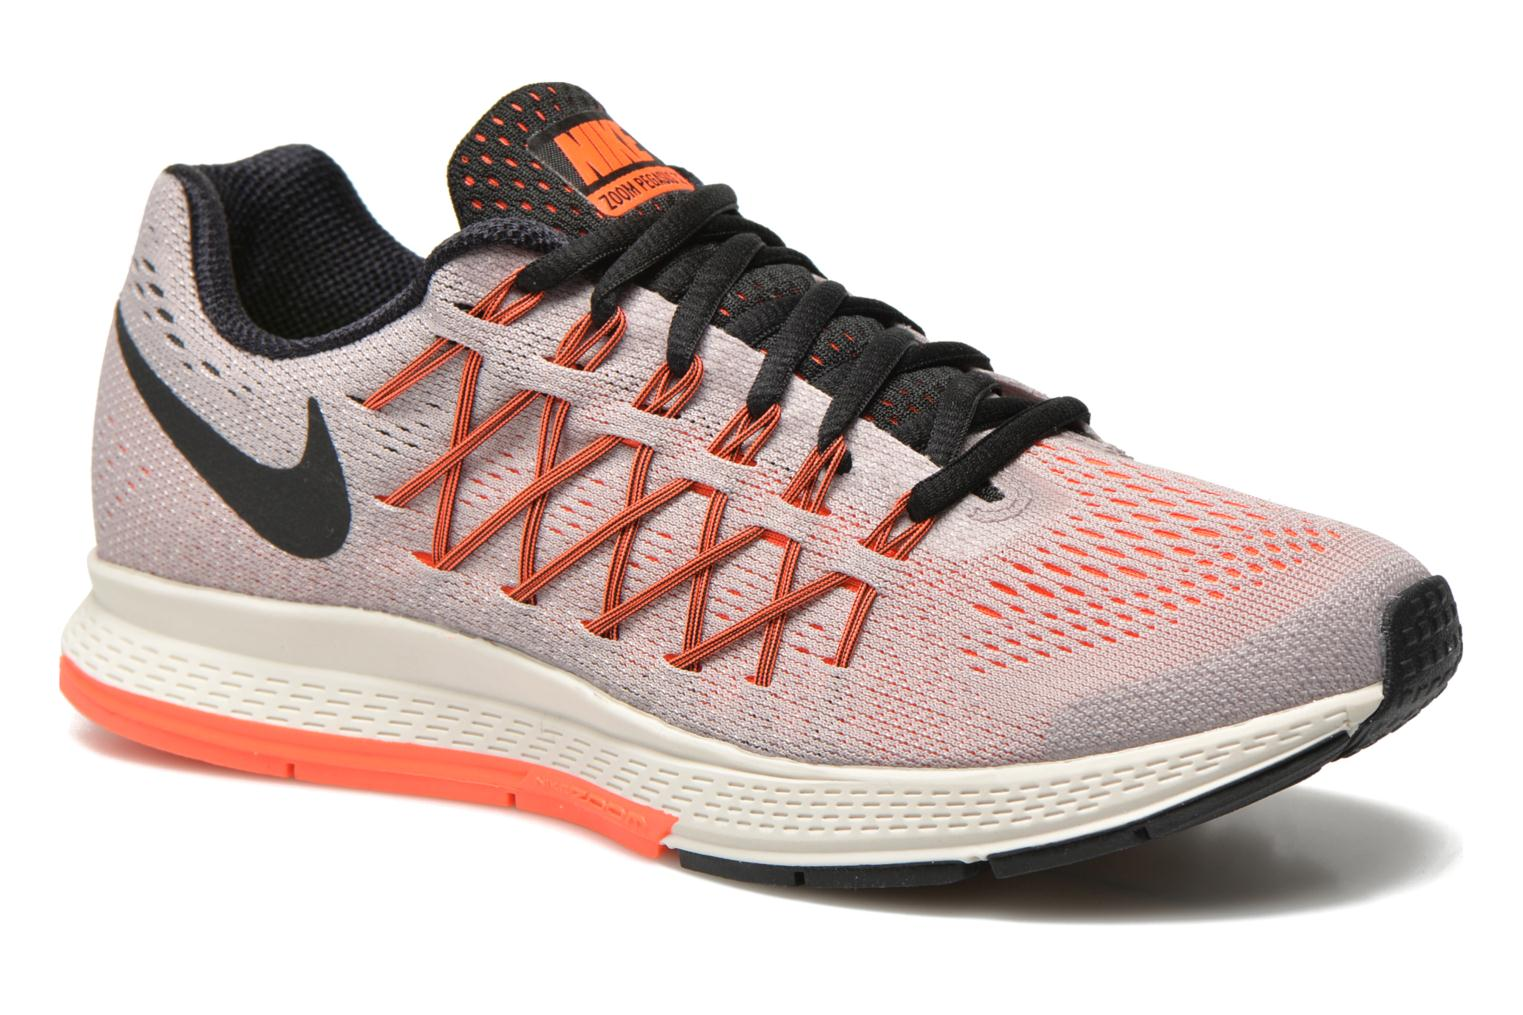 sports shoes 62d4f 97ce2 ... inexpensive sport shoes nike wmns nike air zoom pegasus 32 grey  detailed view pair view 8cbc5